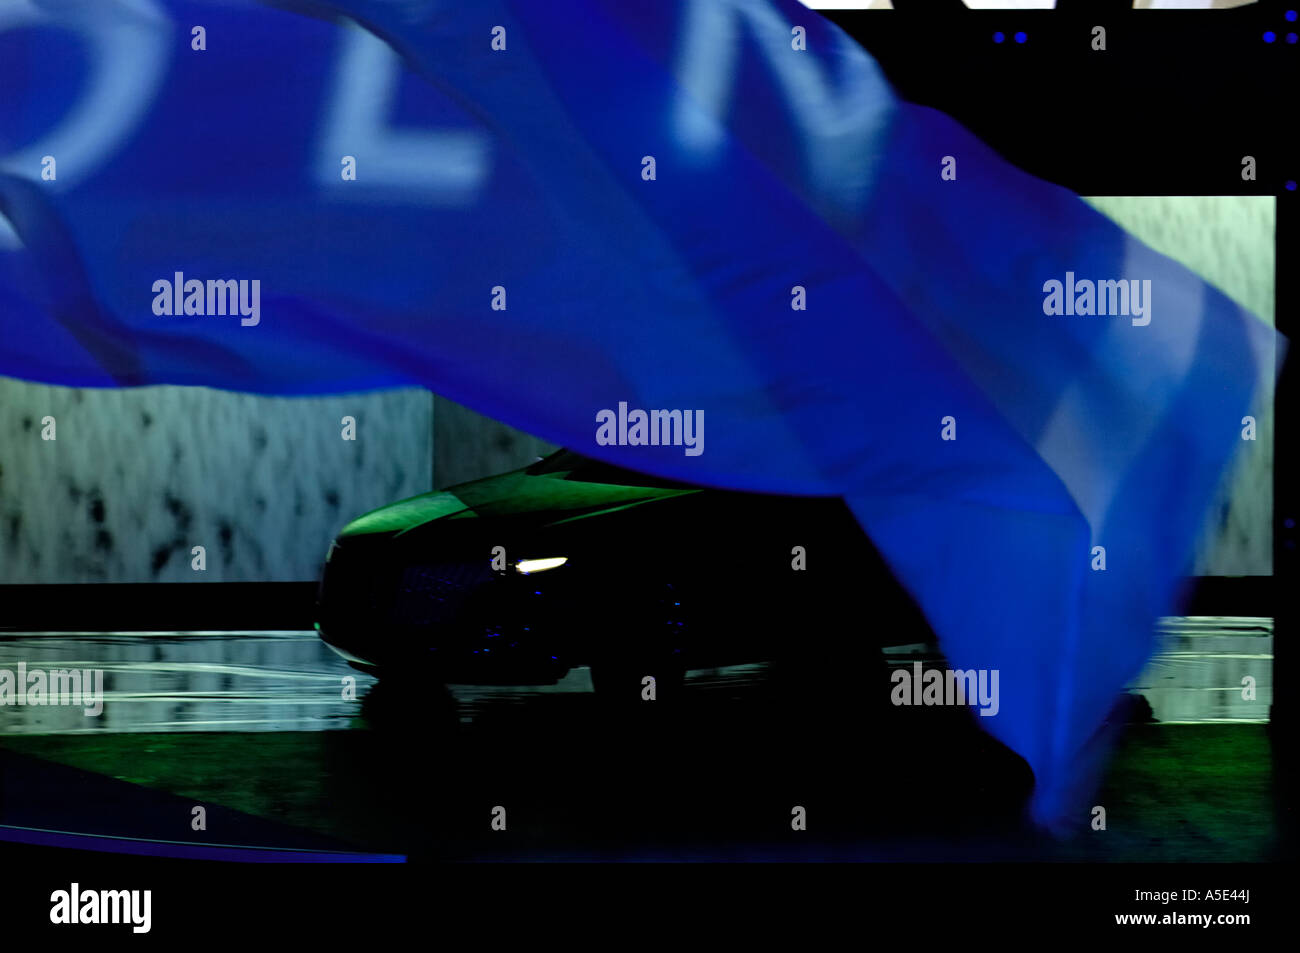 https://c8.alamy.com/comp/A5E44J/unveiling-of-the-lincoln-mkr-concept-car-at-the-2007-north-american-A5E44J.jpg